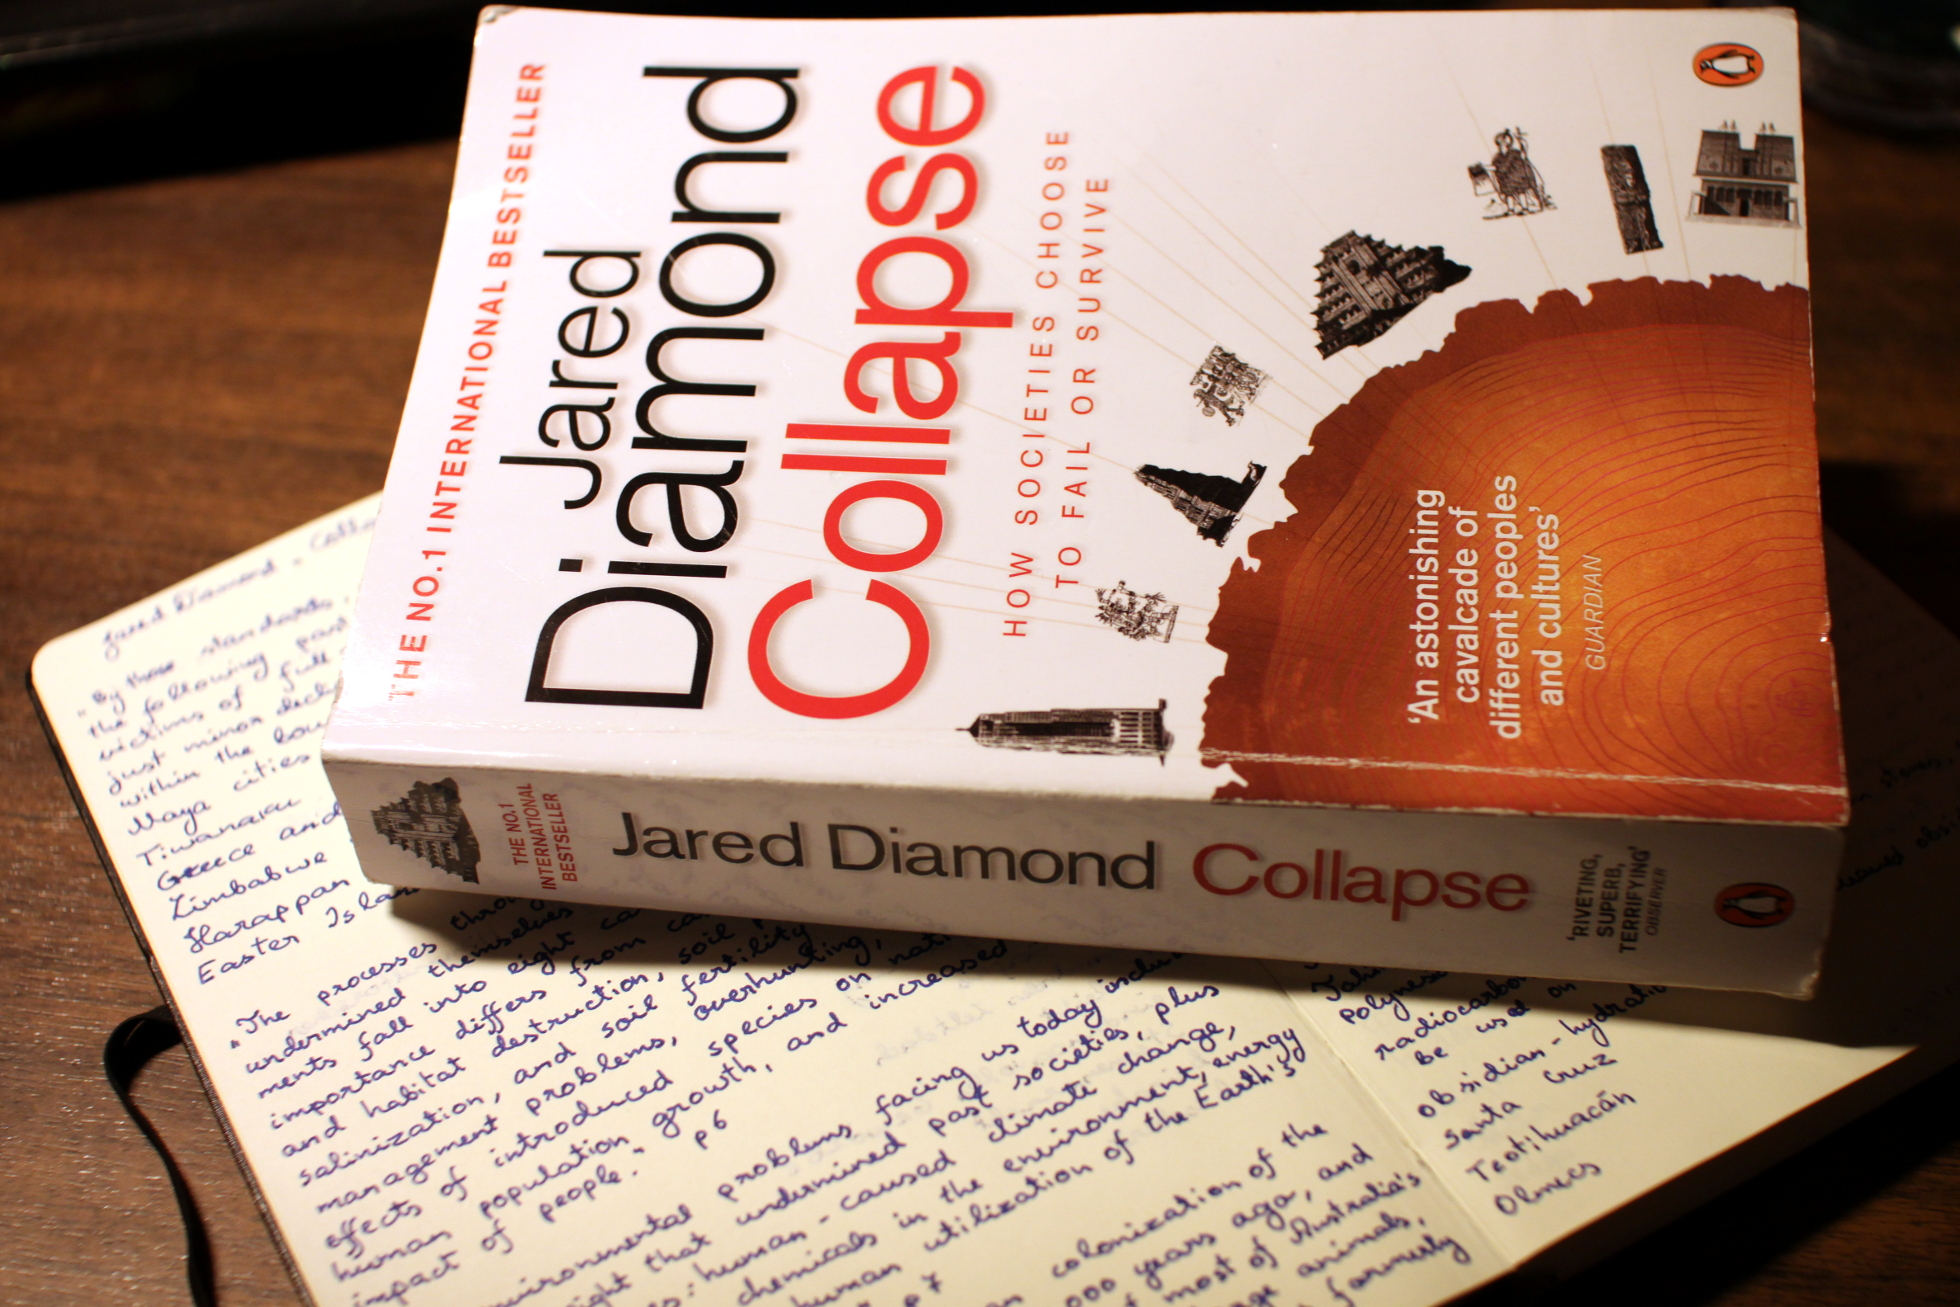 Jared Diamond, Civilizaţia aztecă, Sindromul Insula Pastelui, Sursa Books Come First